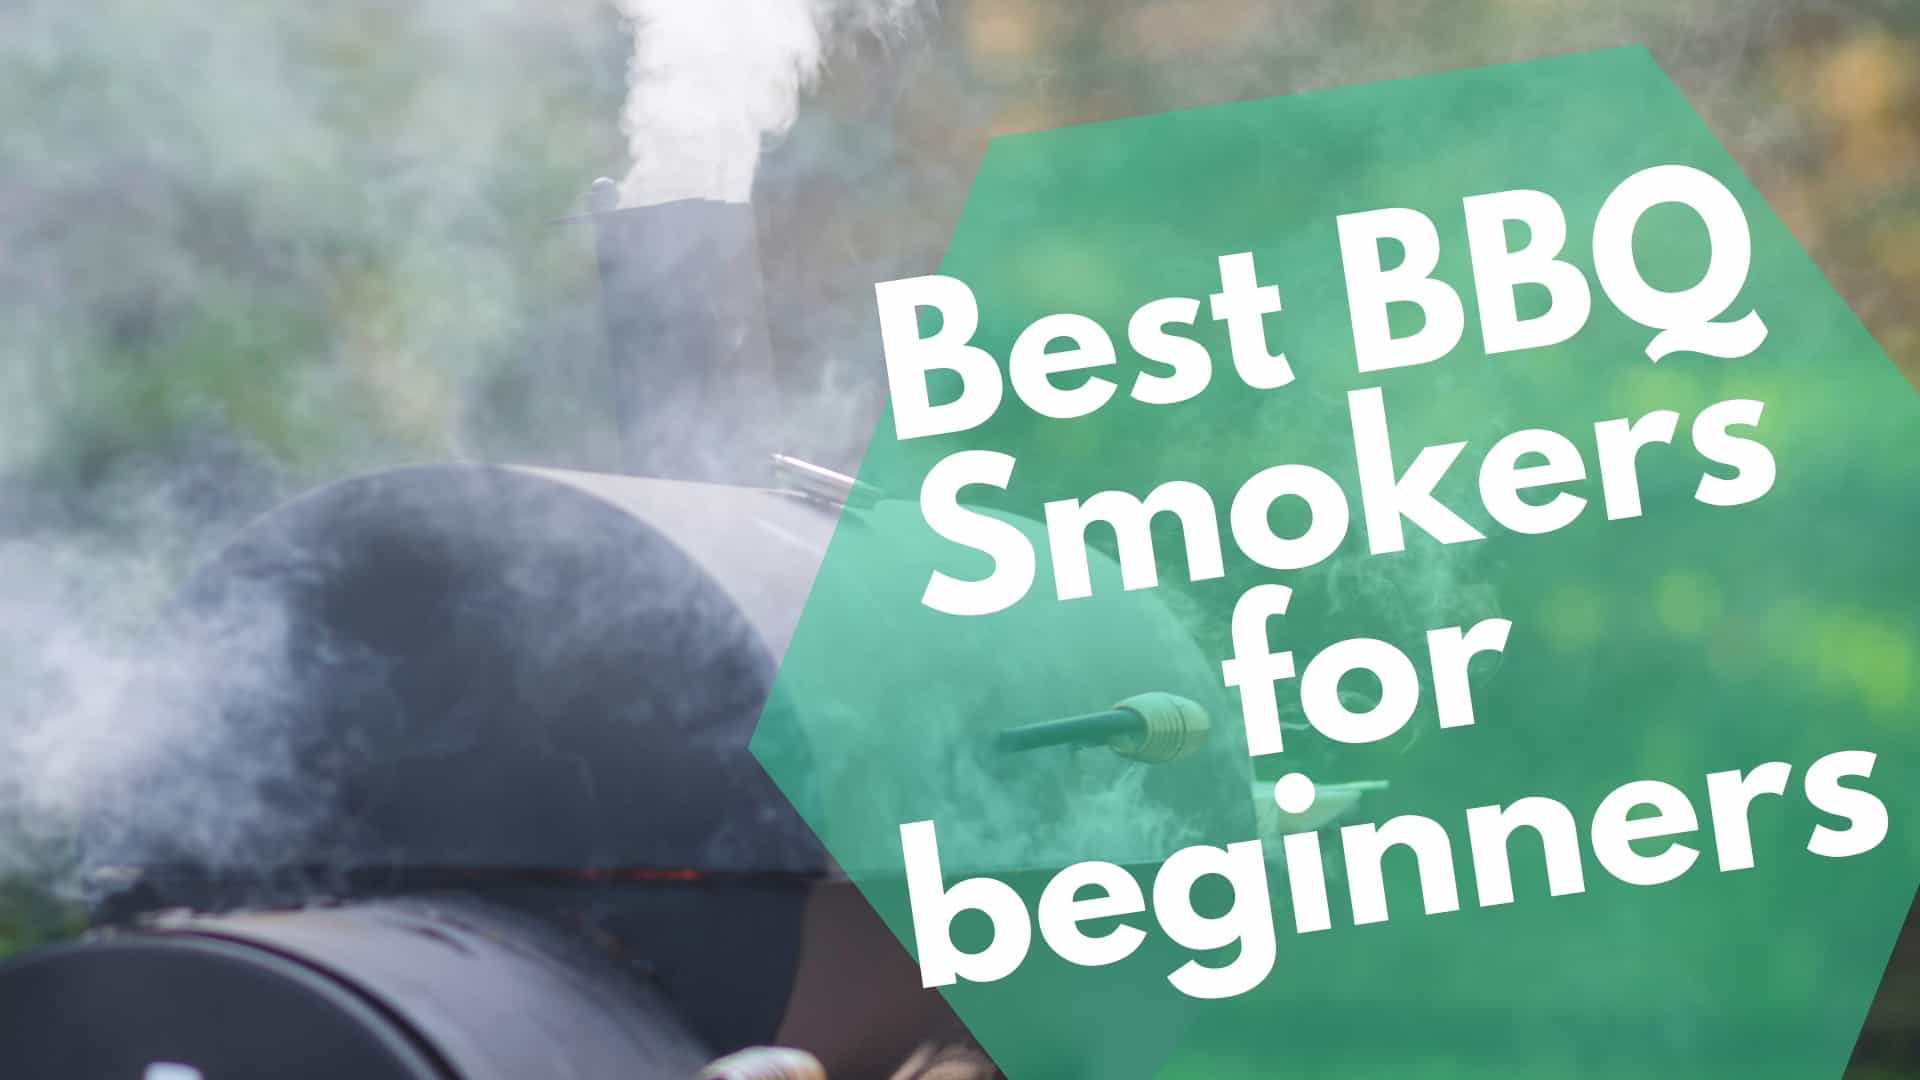 Best BBQ Smokers for beginners